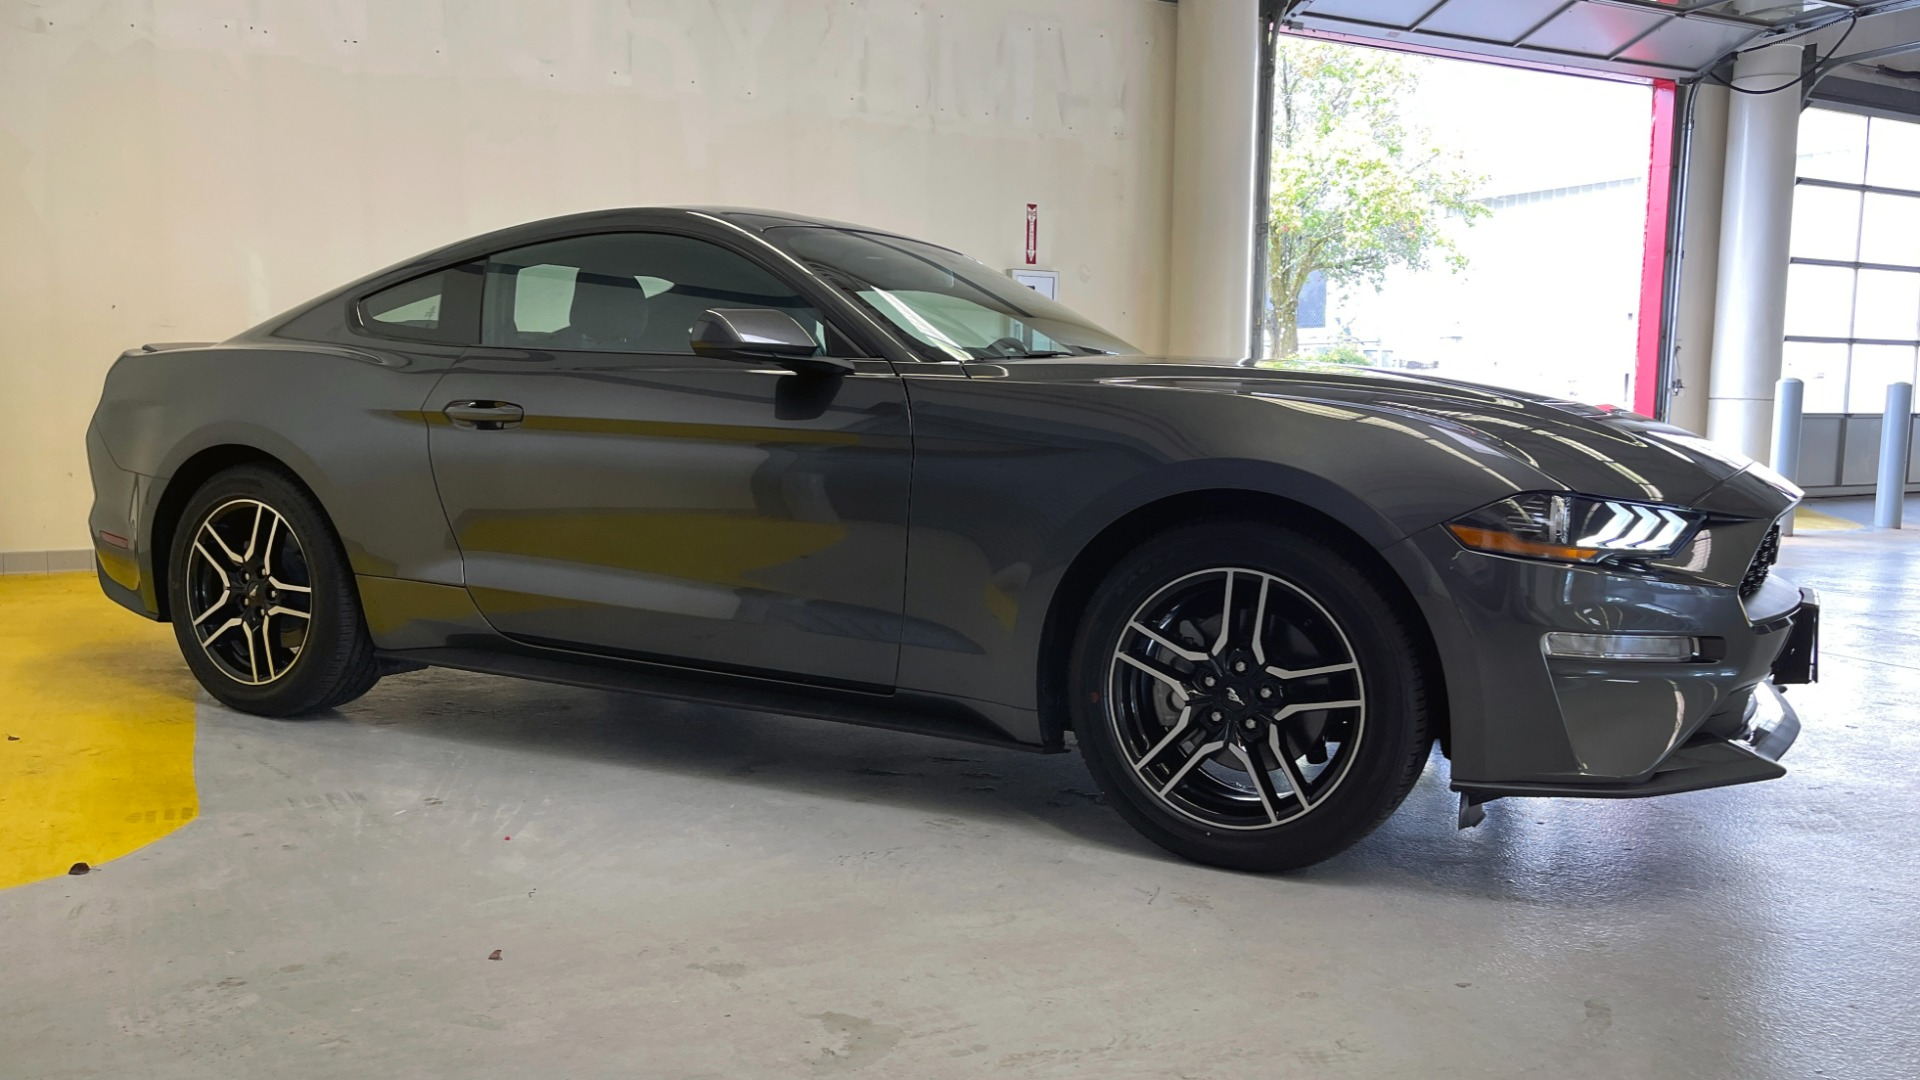 Used 2019 Ford MUSTANG ECOBOOST 2.3L / 10-SPD AUTO / SYNC3 8INCH SCREEN / TRACK APPS / REARVIEW for sale $31,795 at Formula Imports in Charlotte NC 28227 5